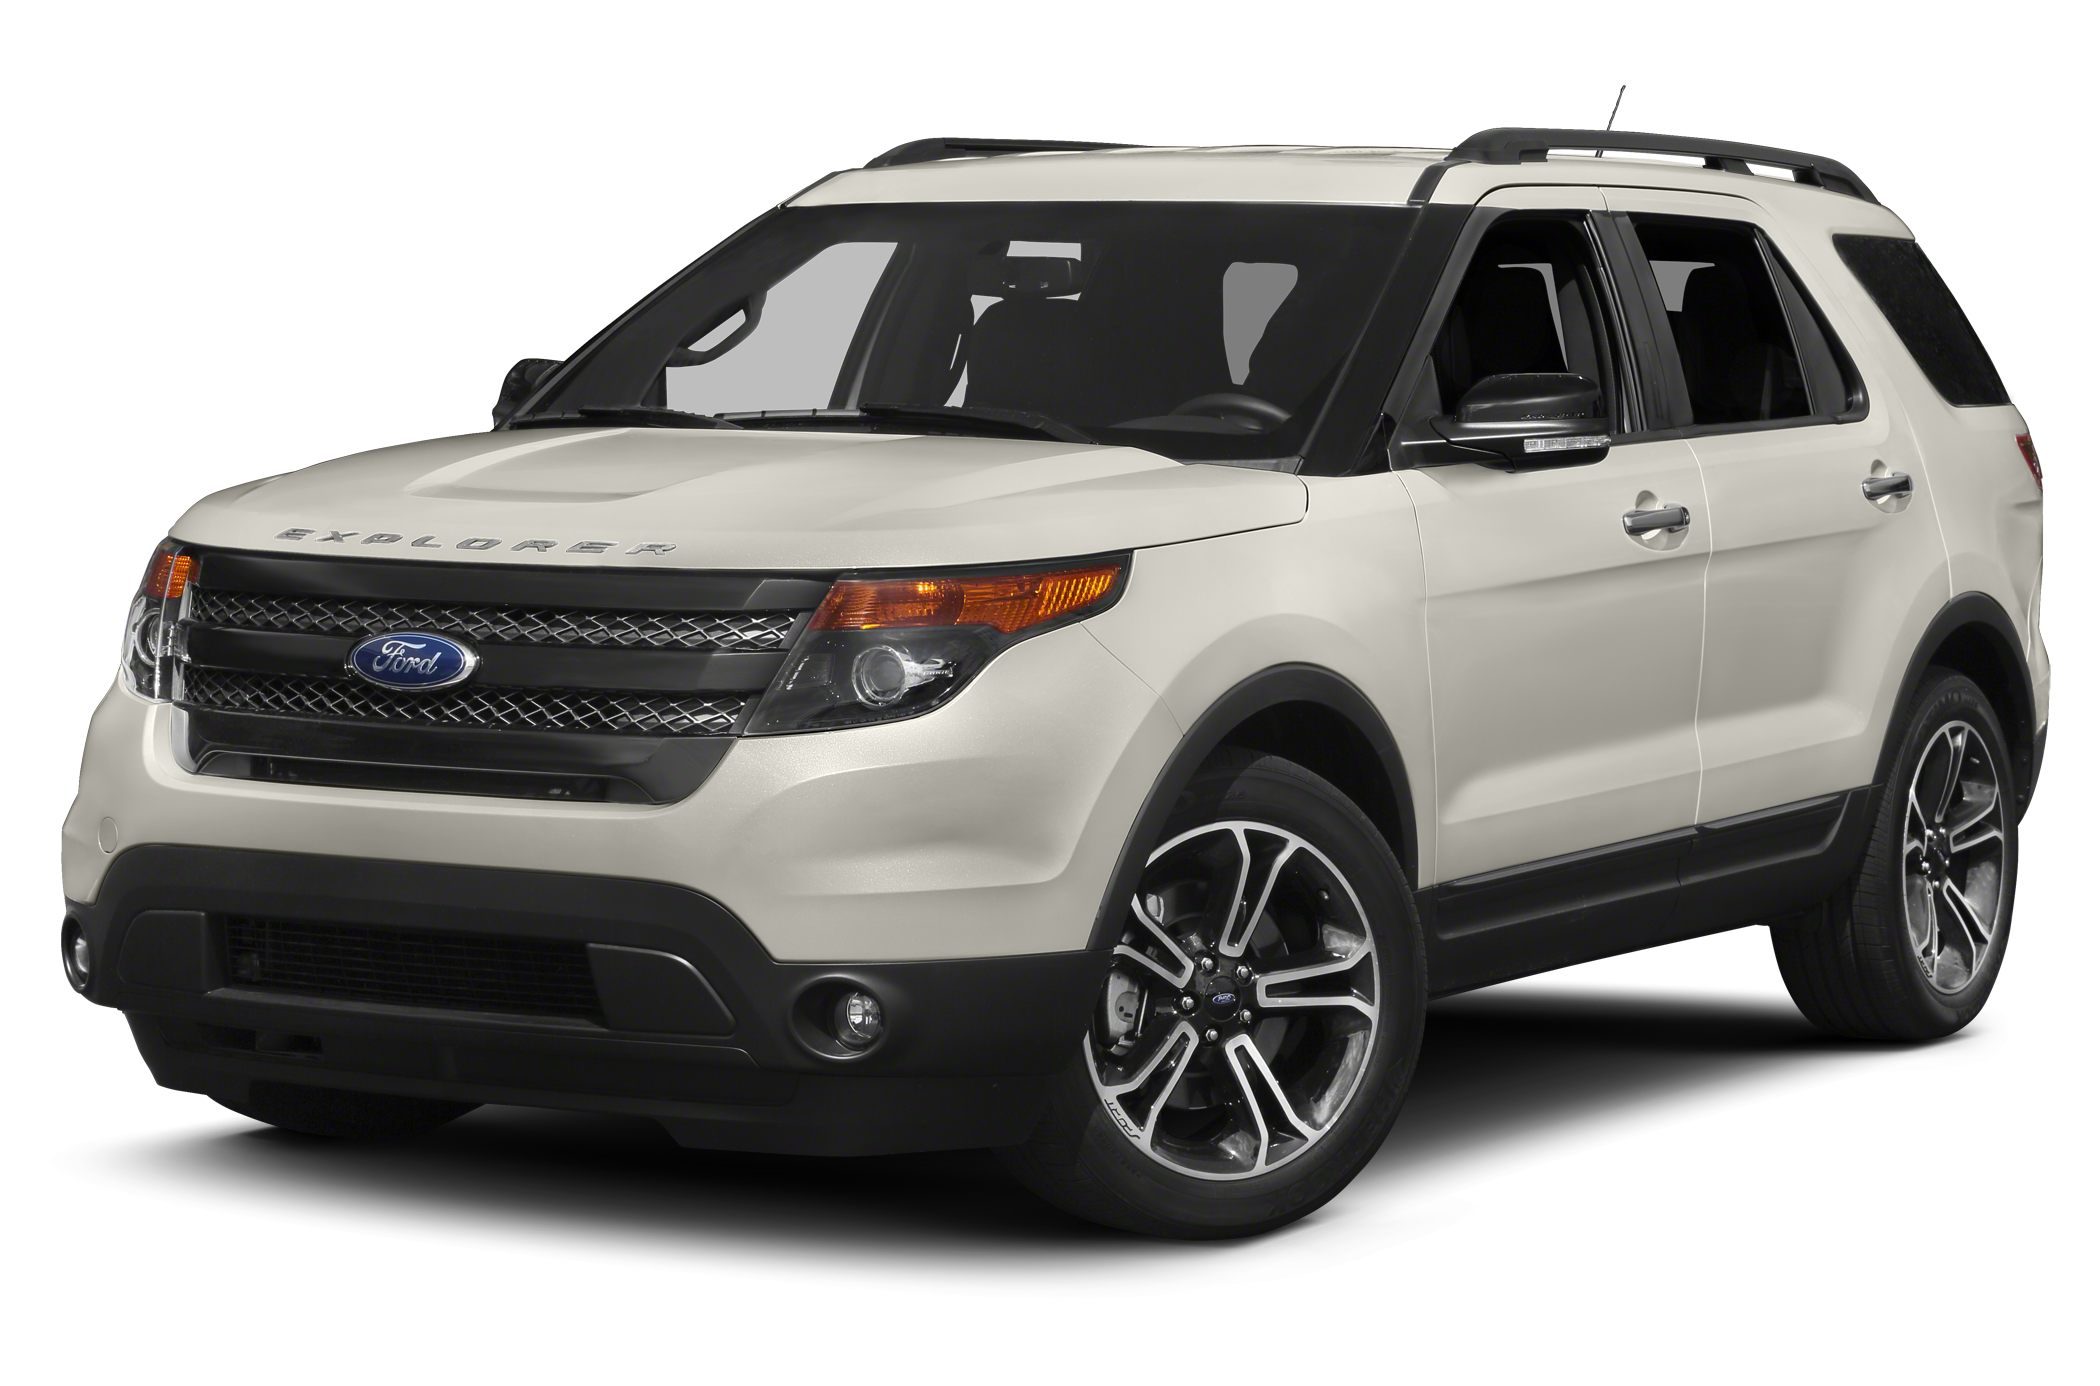 2013 Ford Explorer Sport SUV for sale in Baytown for $39,981 with 21,380 miles.